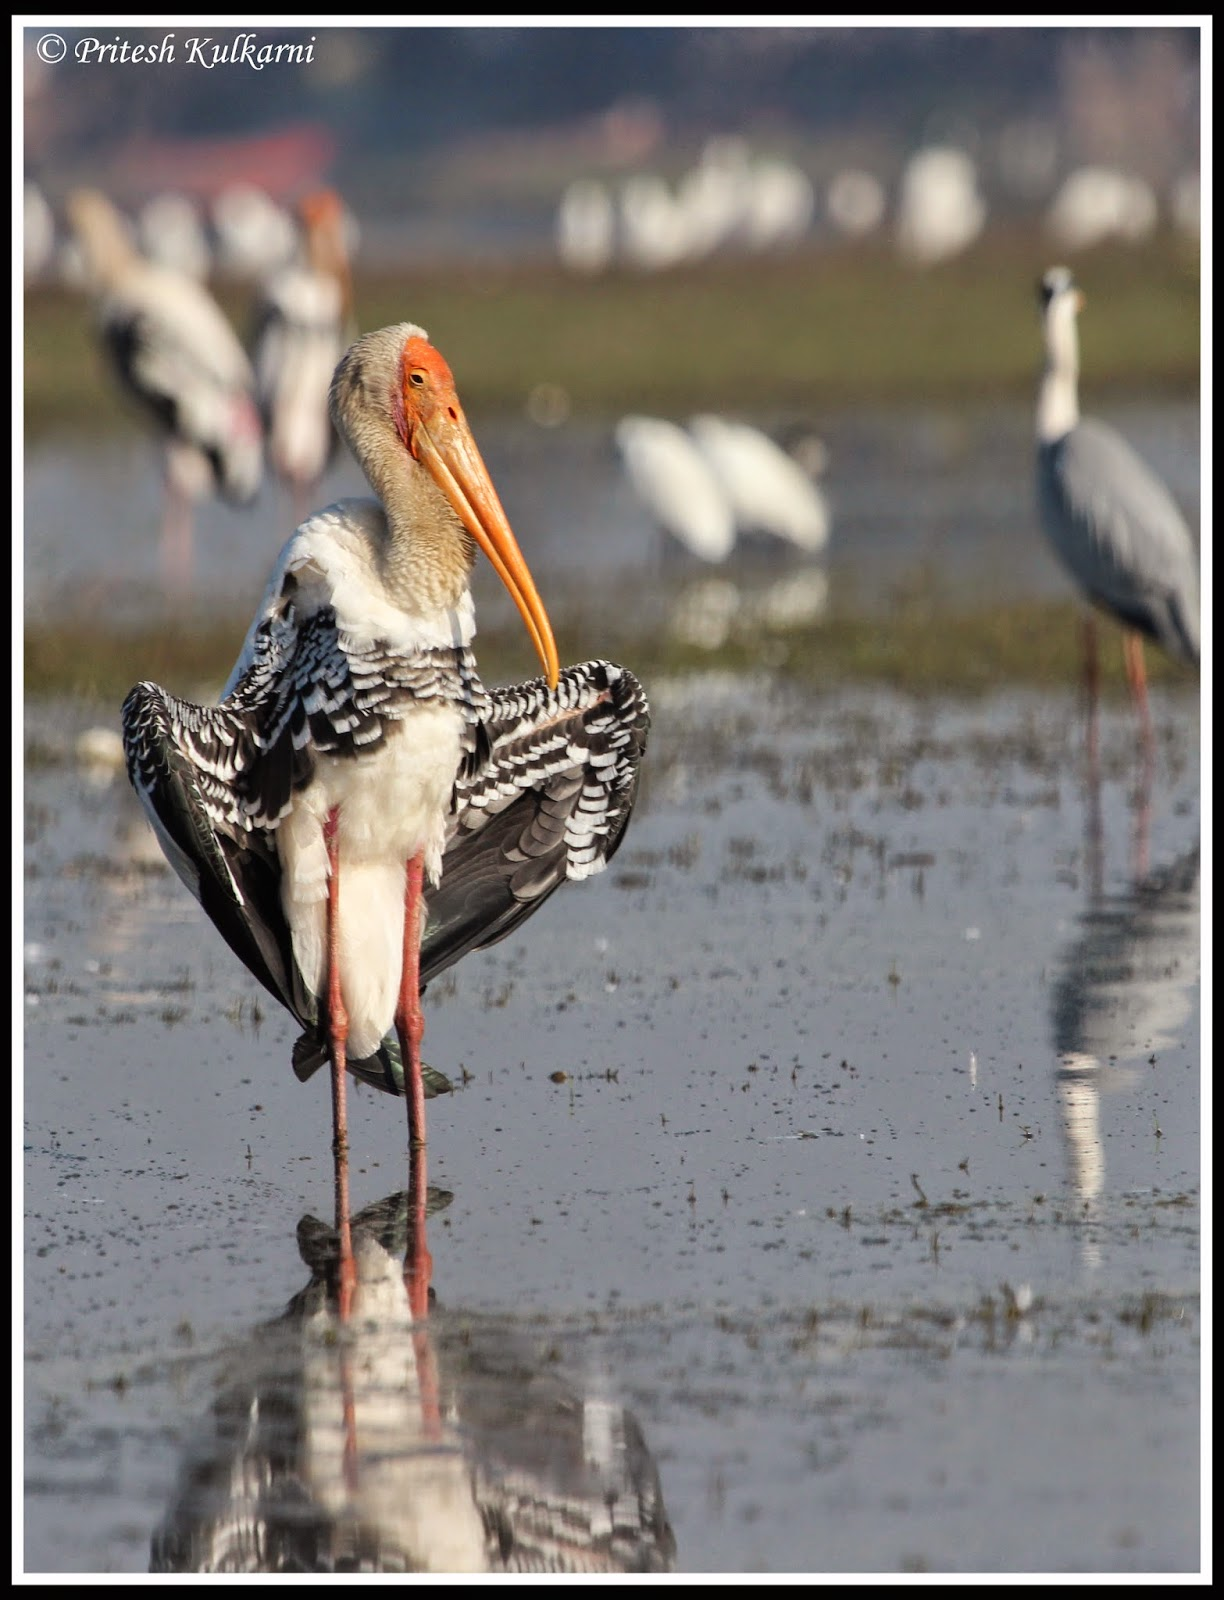 Basking in sun light - Painted stork